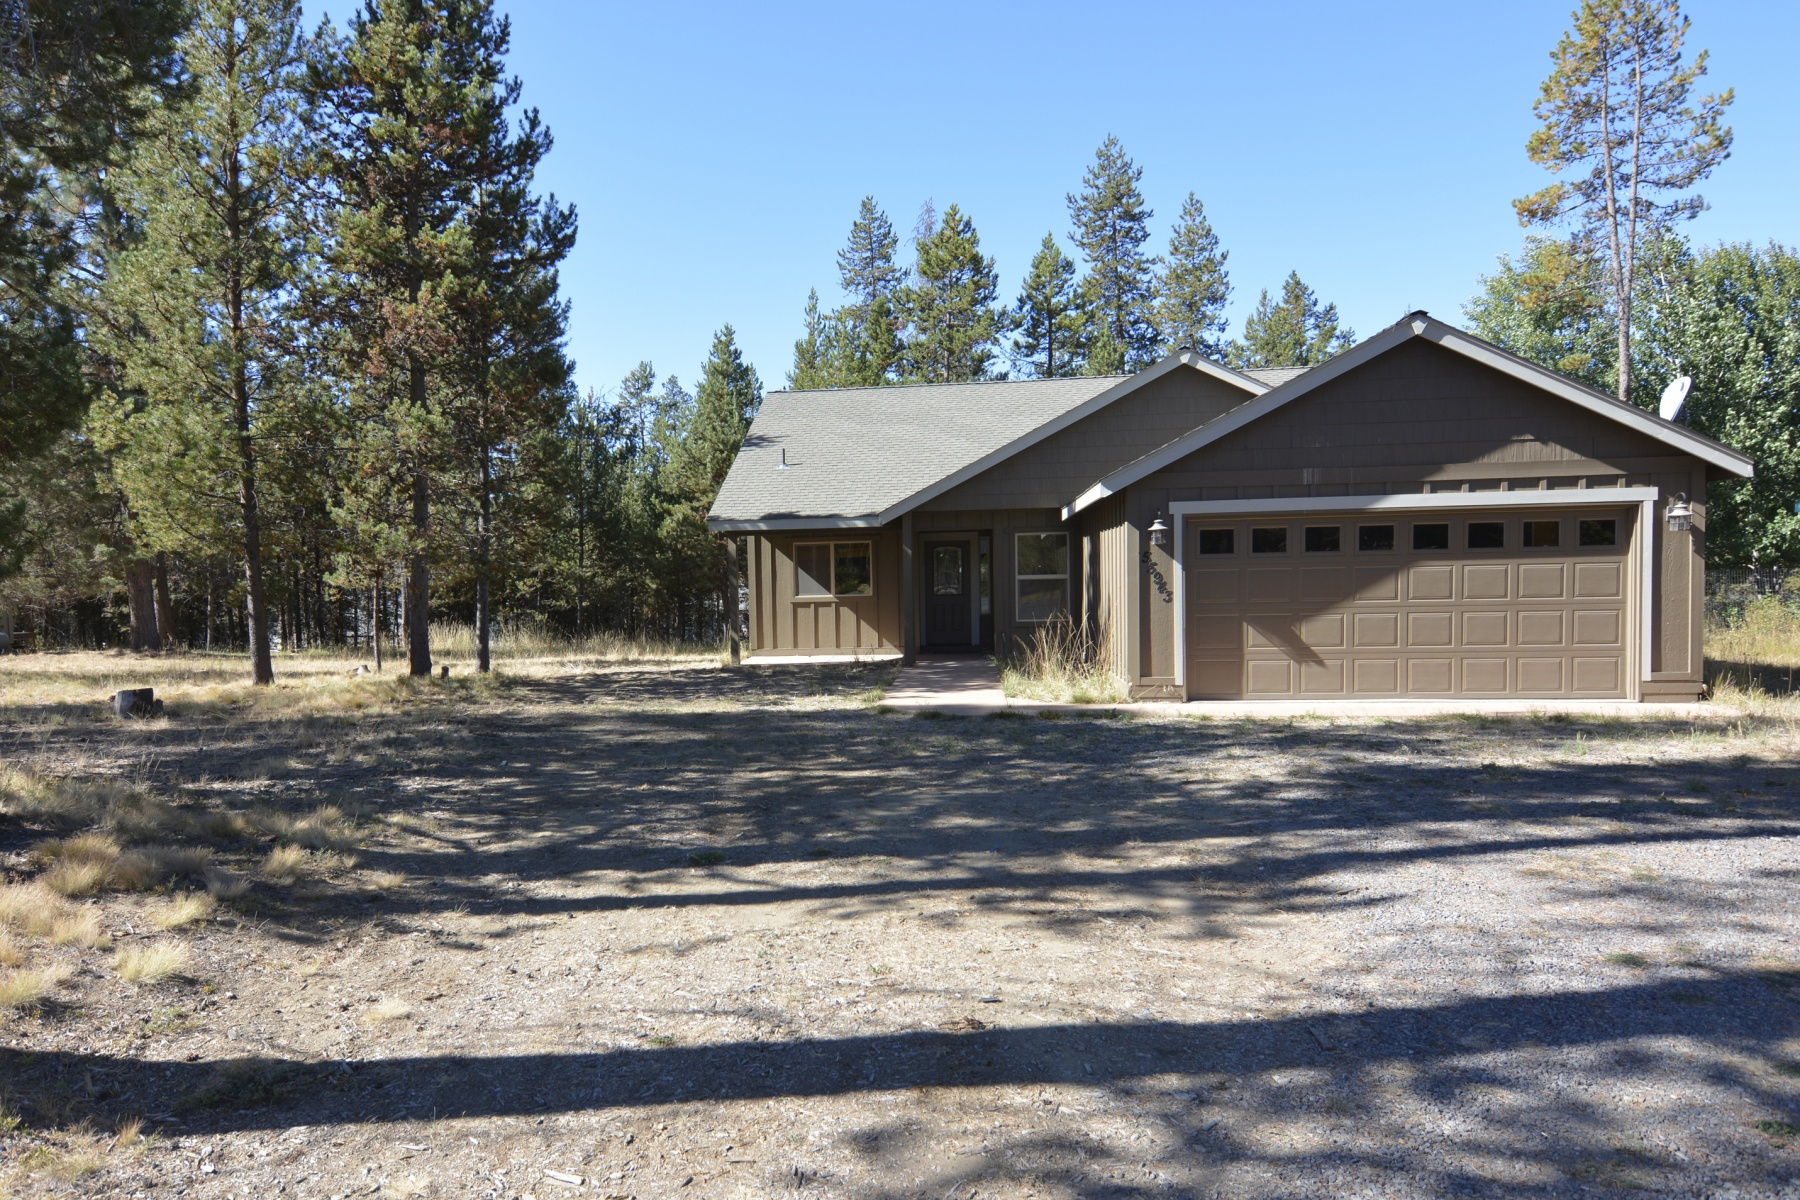 Single Family Home for Sale at 55943 Snow Goose Road, BEND 55943 Snow Goose Rd Bend, Oregon, 97707 United States